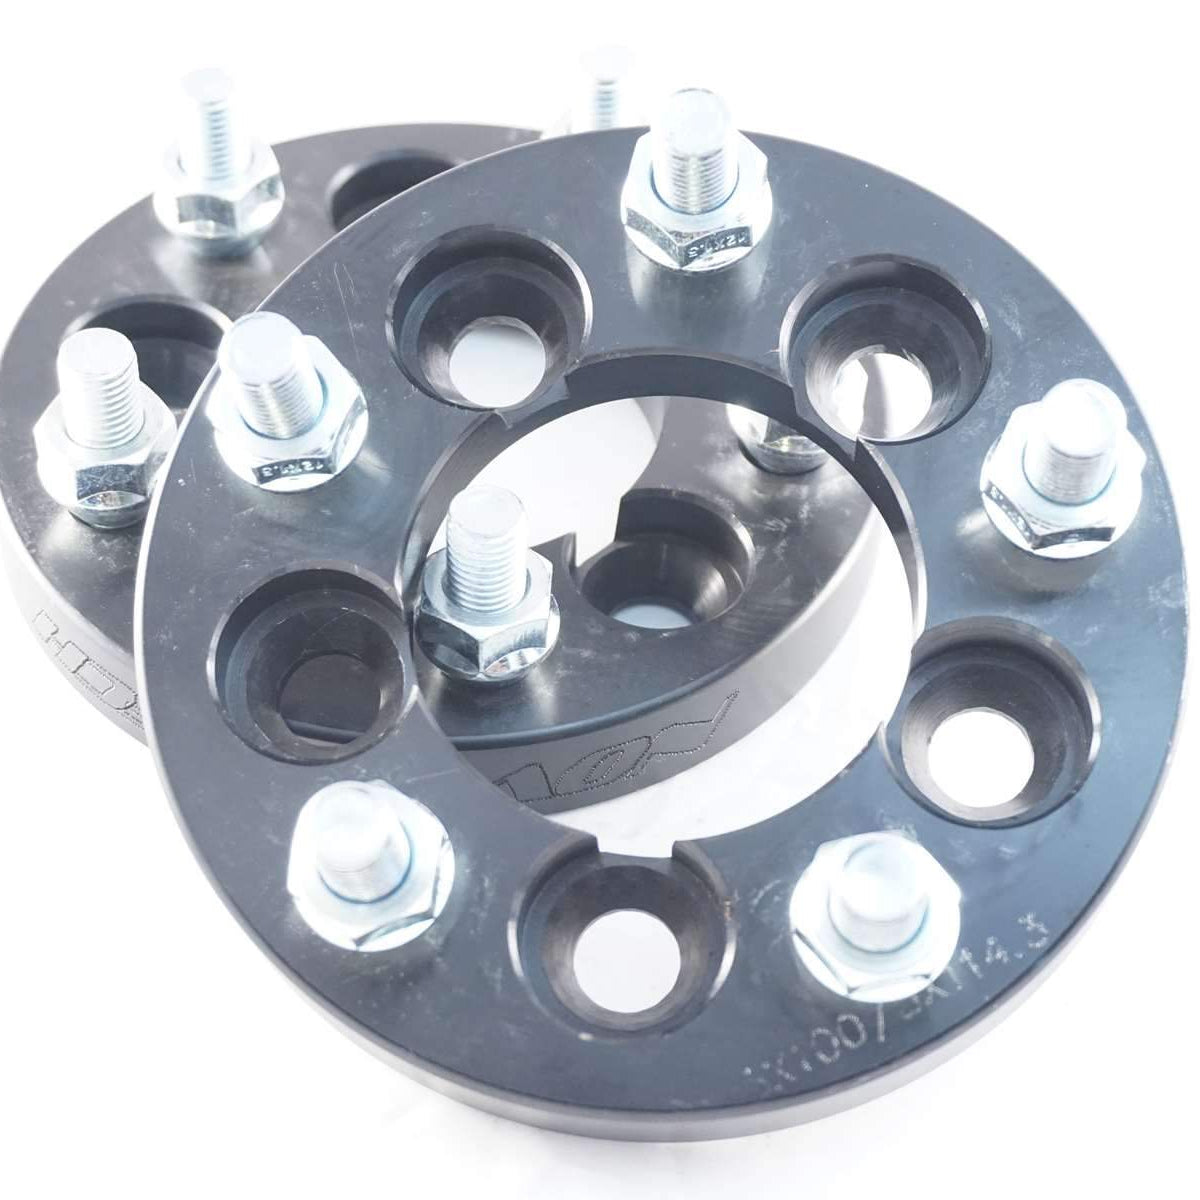 Wheel Adapters: 5x114.3 to 5x100 - 25mm